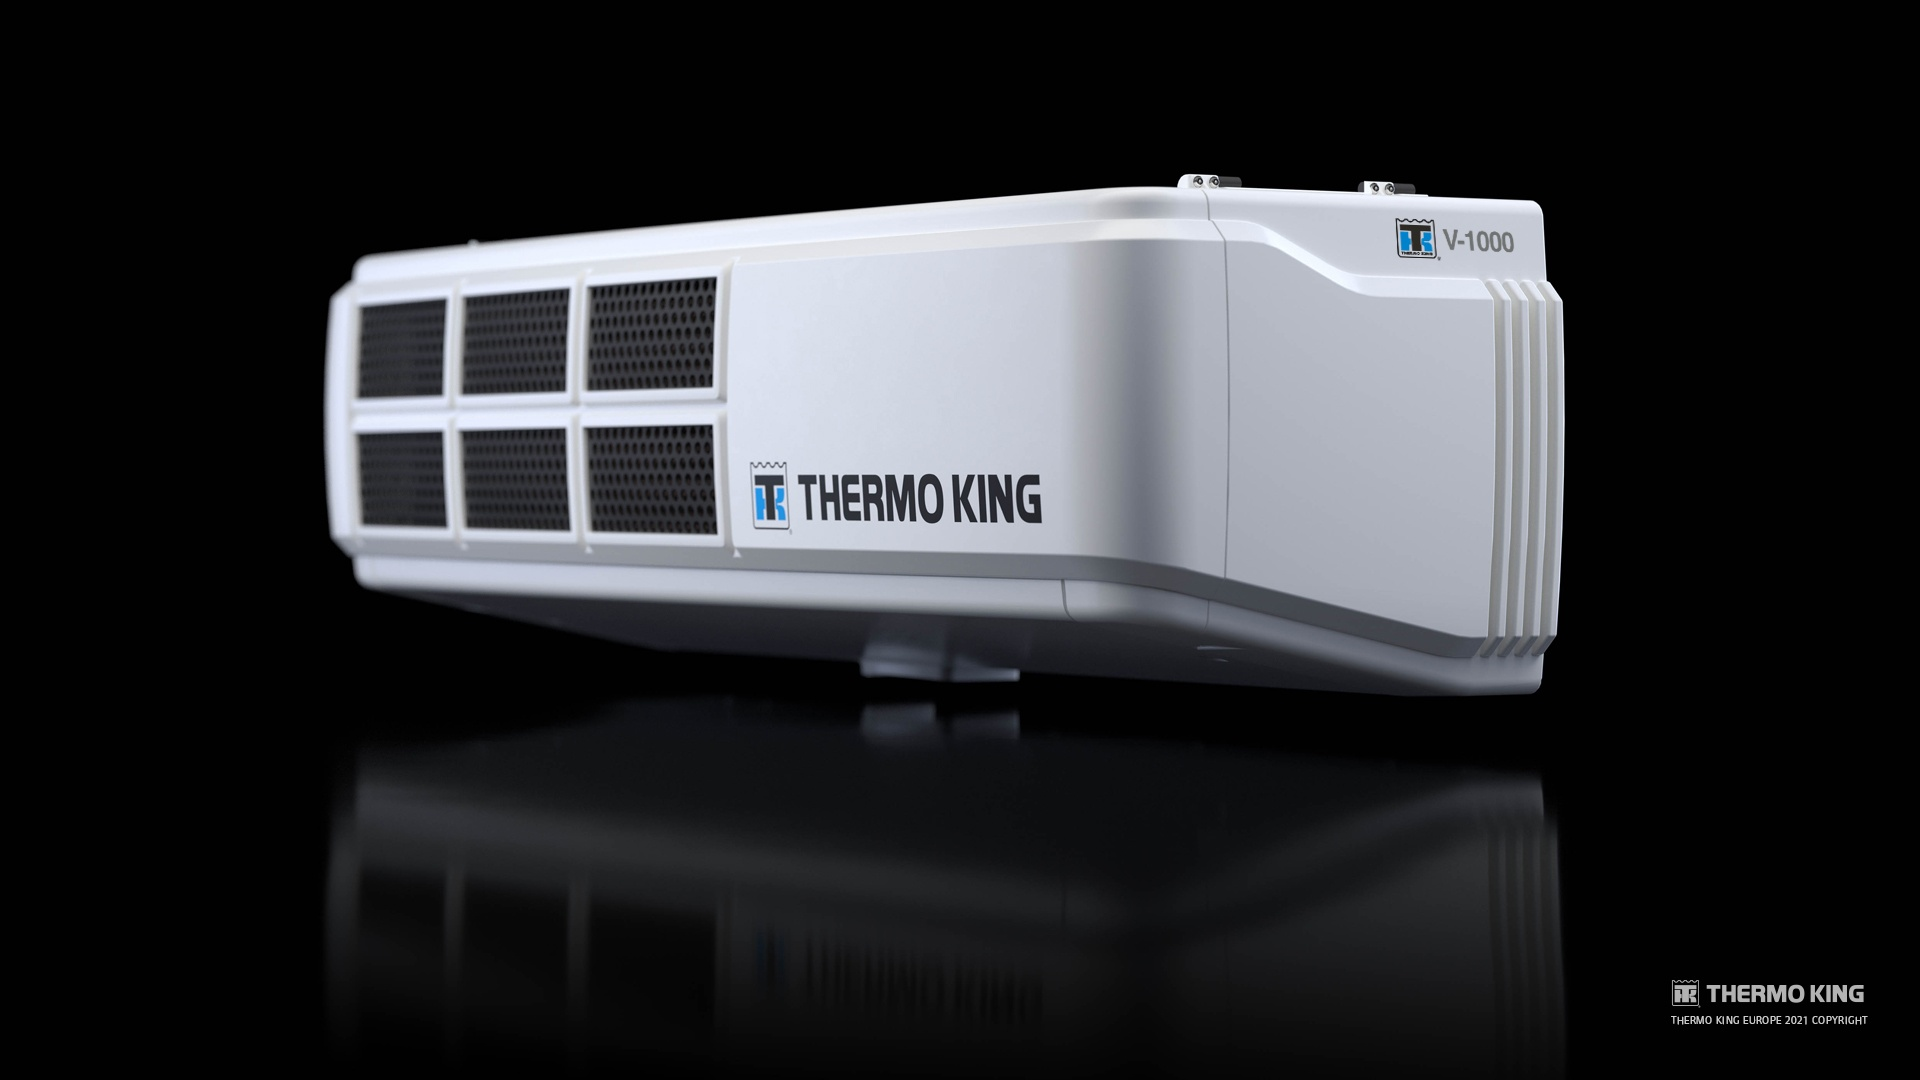 Thermo King